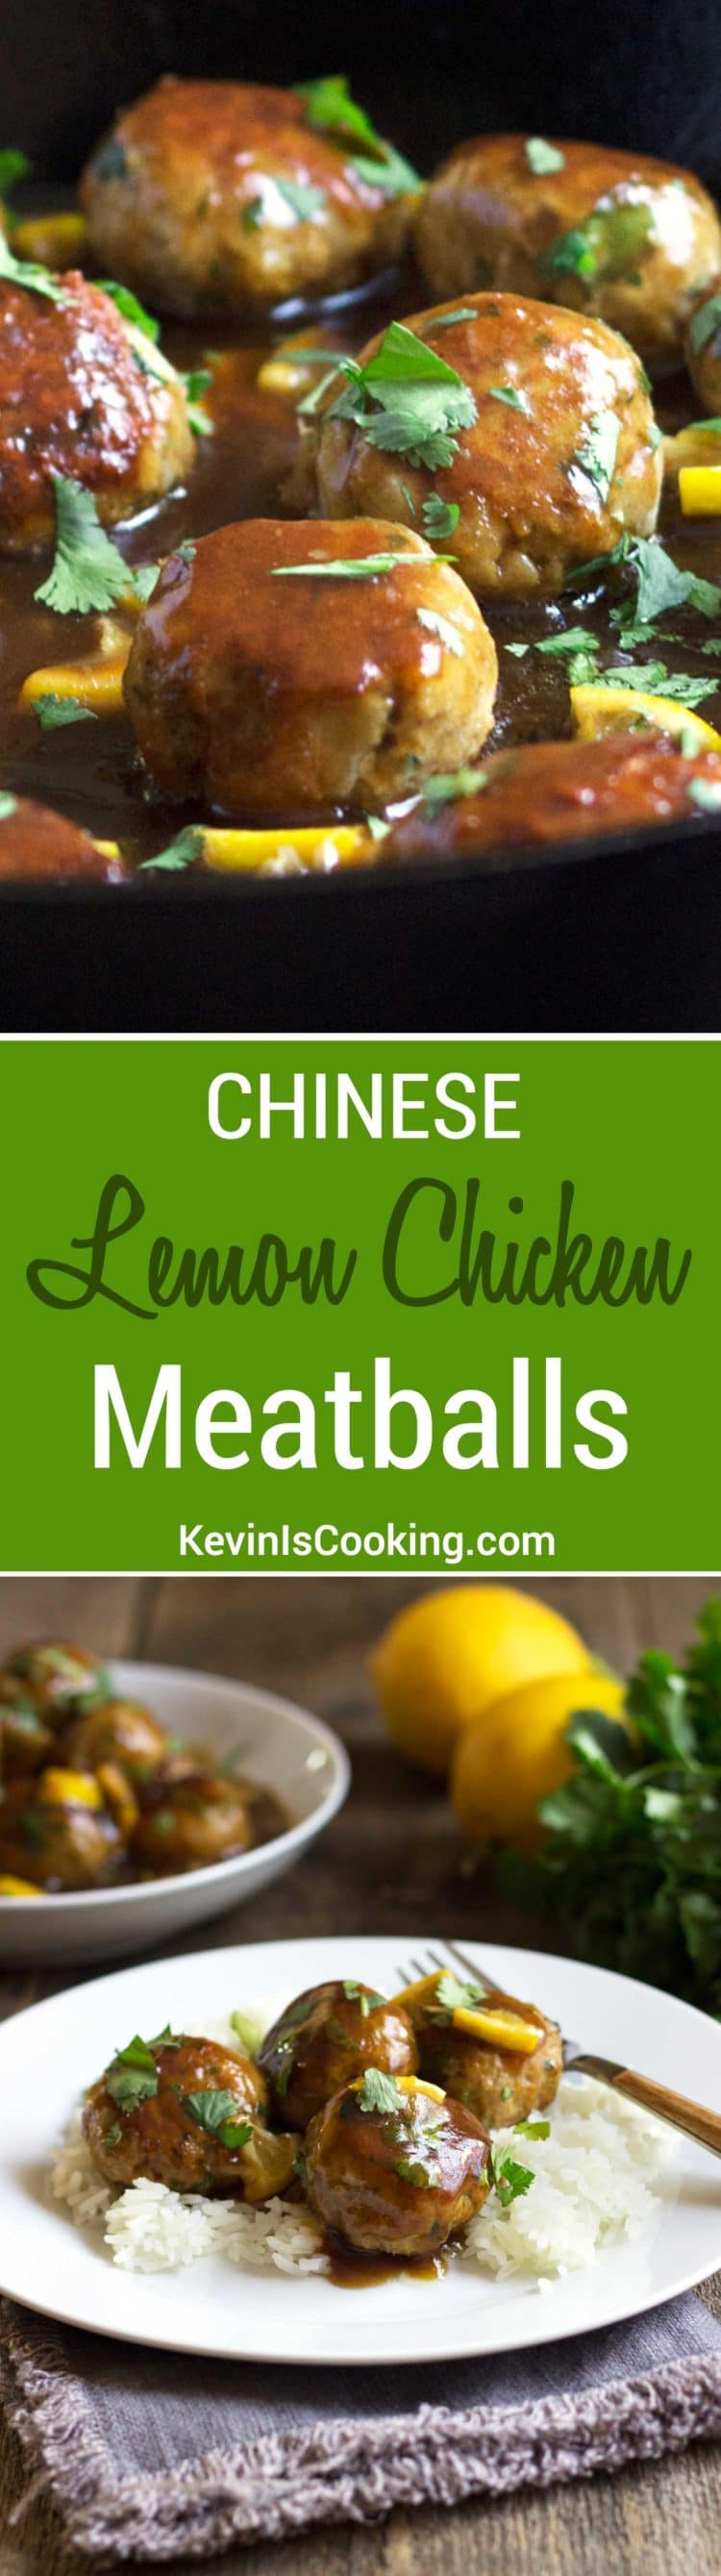 These Lemon Chicken Meatballs get a surprising crunch from water chestnuts, Asian spices and are simmered in a beautiful lemon and cilantro sauce.